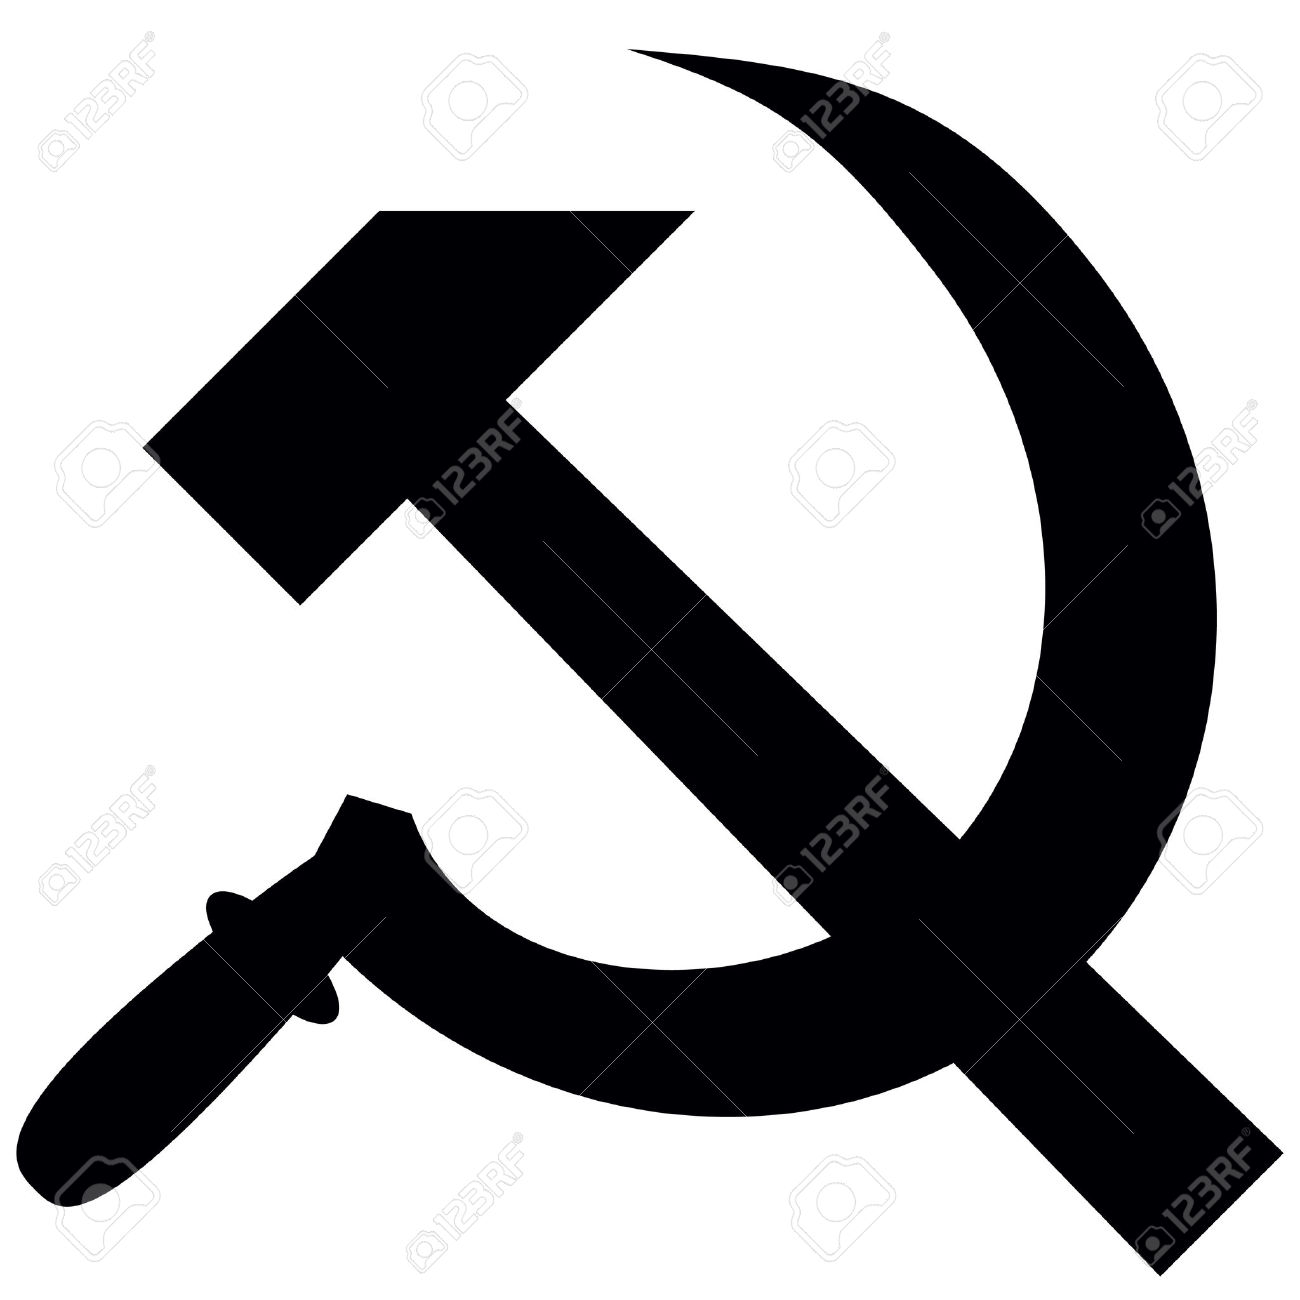 Hammer And Sickle Isolated On White Background, Vector.